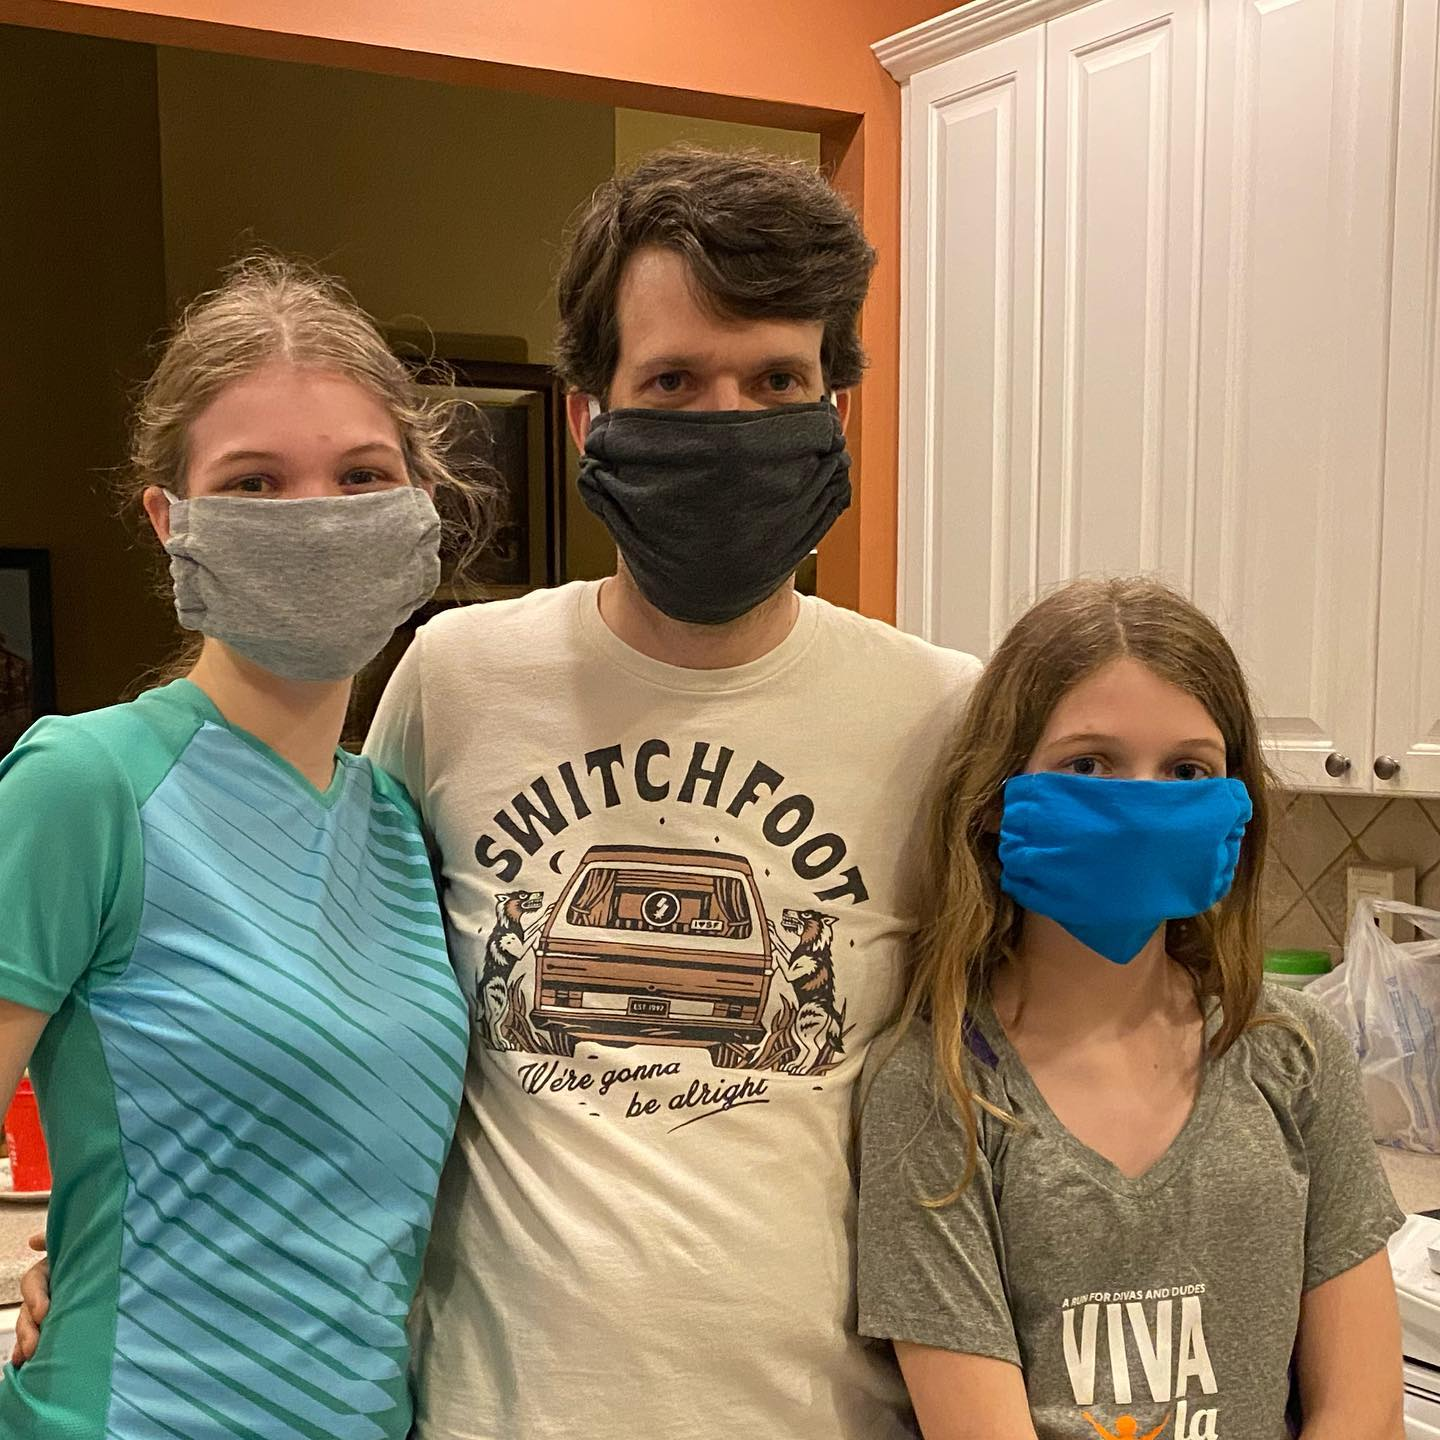 New masks made by Olivia using a 70-year-old Singer sewing machine. #family #covid19